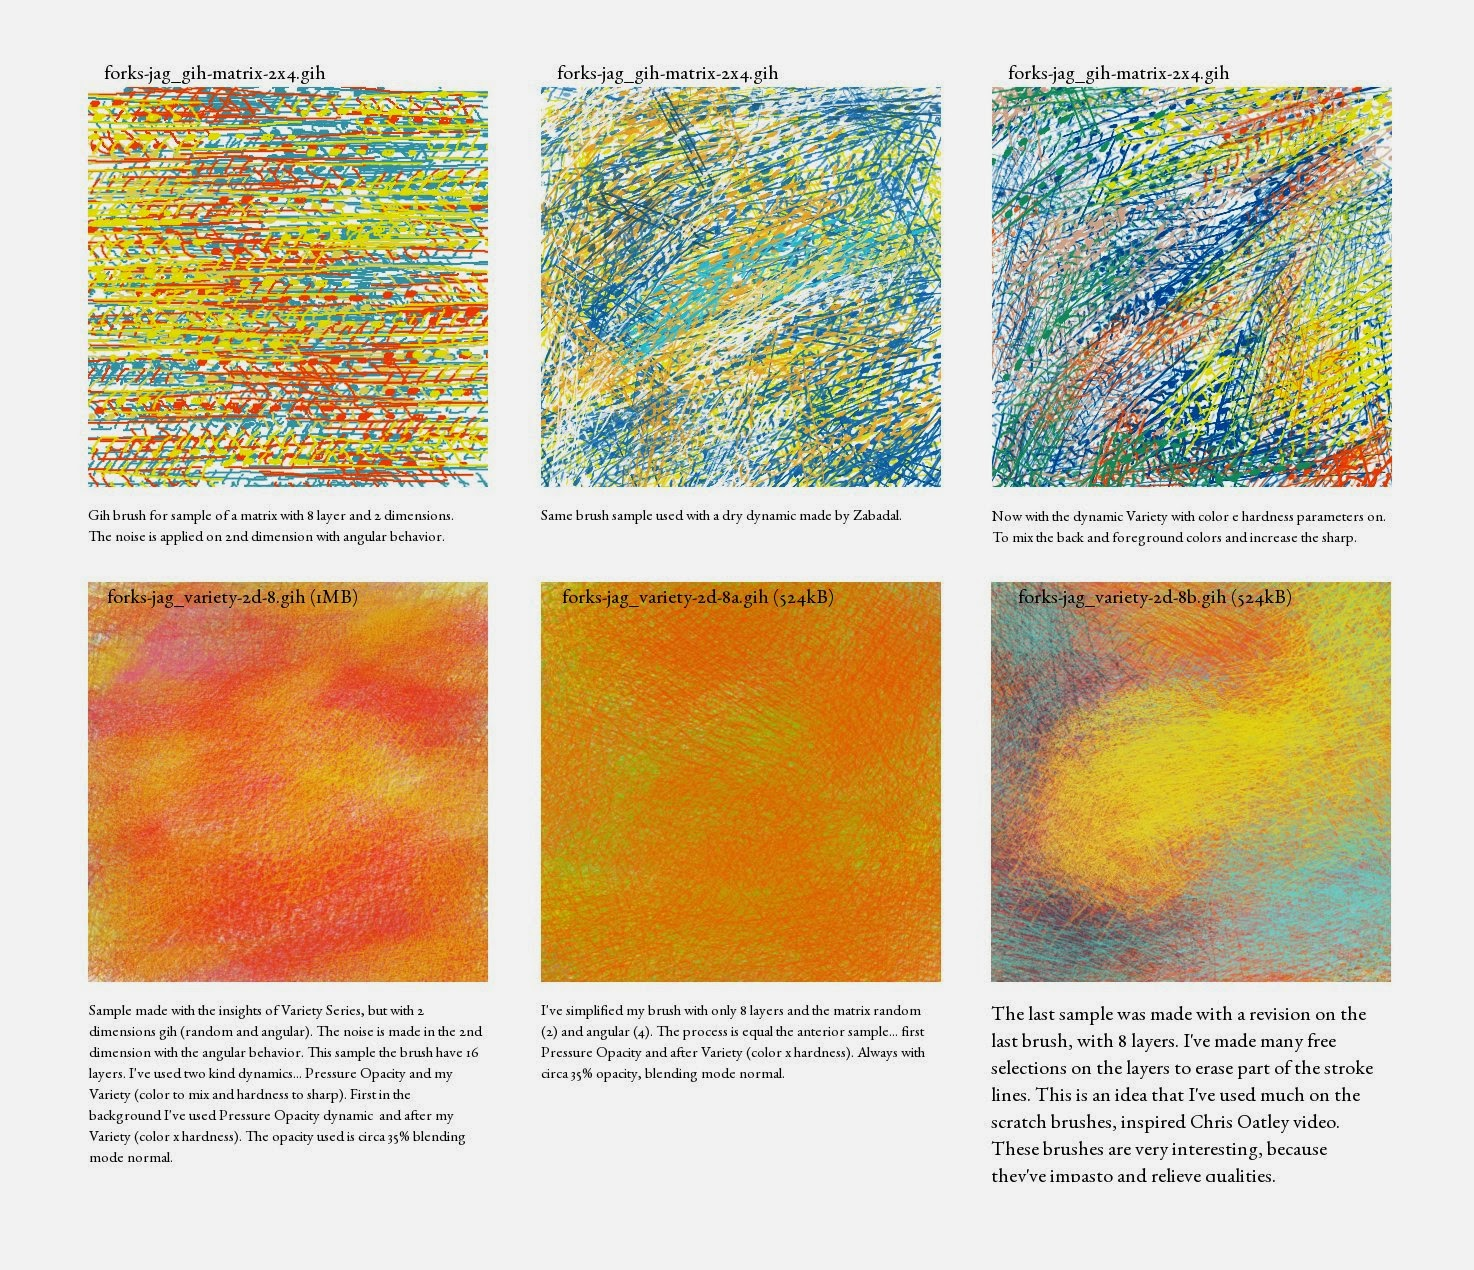 Samples of my gih sample matrix with 2 dimensions and the first brush series based in this tutorial. Made with Gimp.